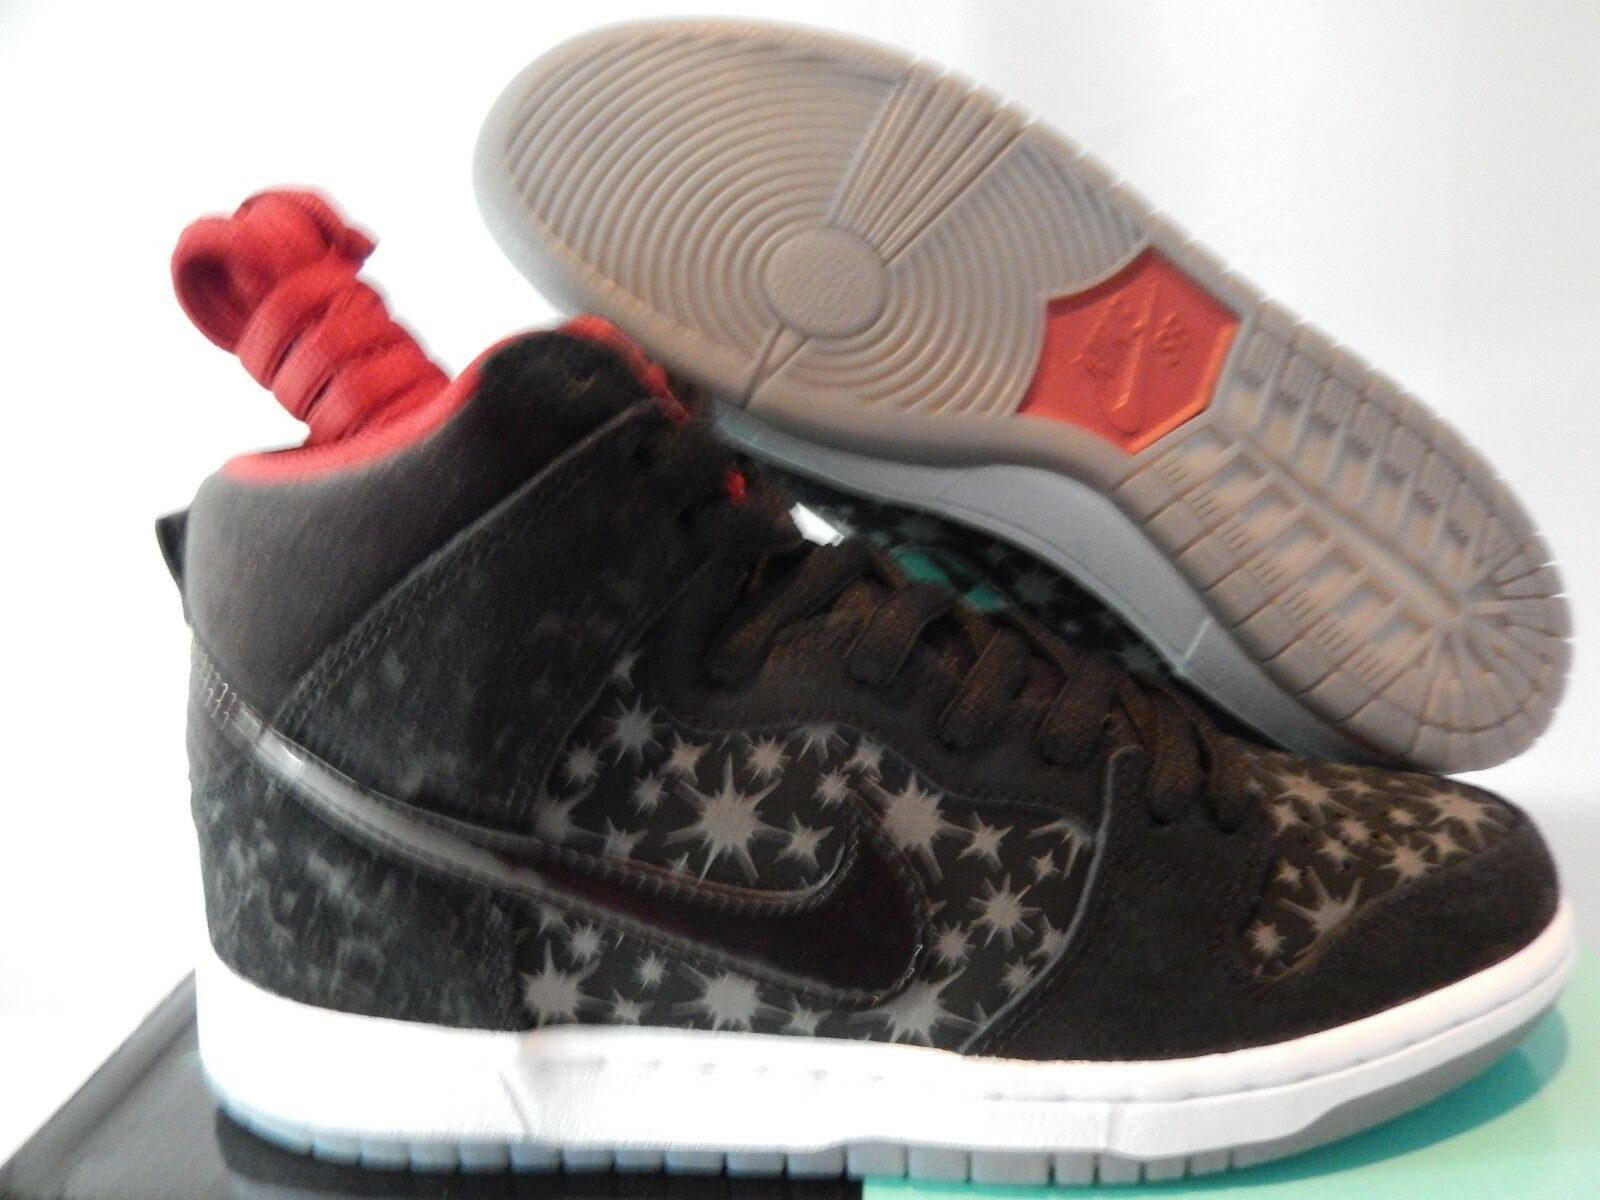 NIKE DUNK HIGH PREMIUM SB BROOKLYN PROJECTS SZ 11.5 RARE!! [313171-025]